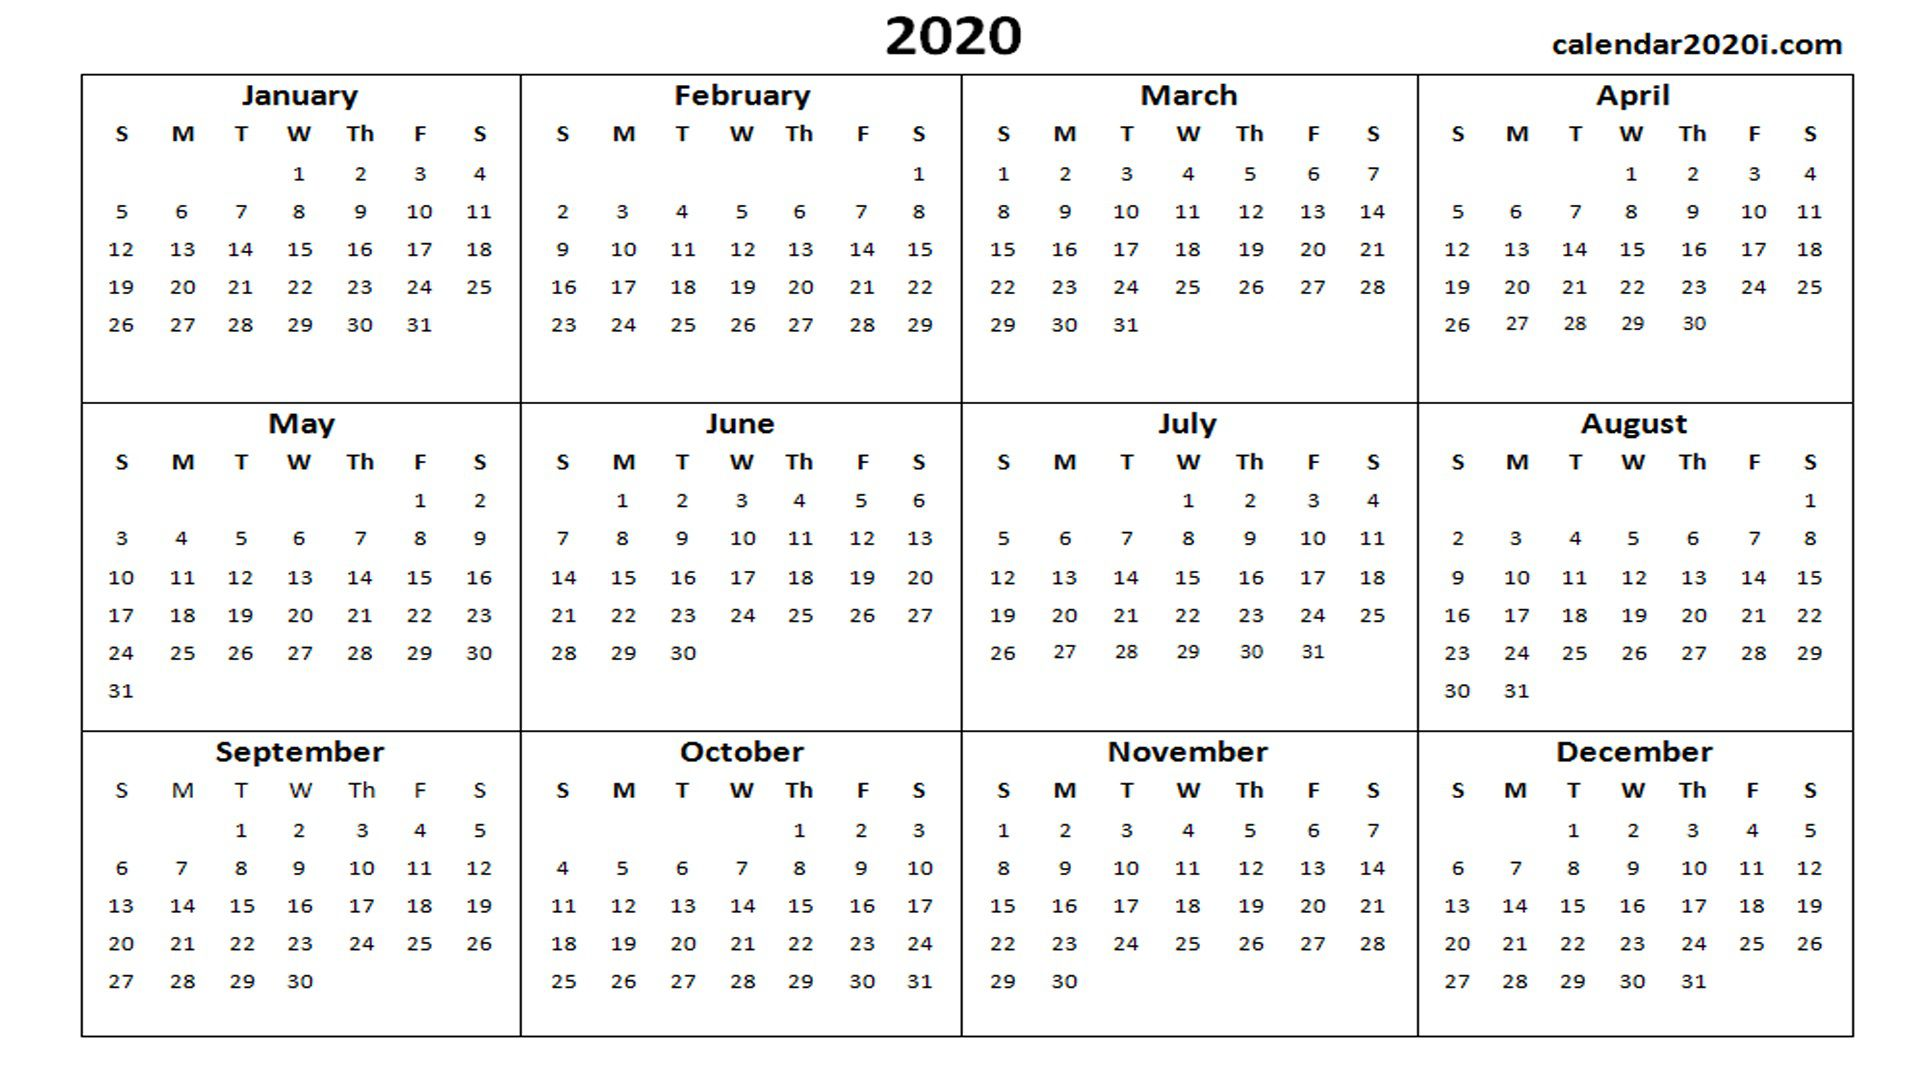 001 Unforgettable Calendar 2020 Template Word Idea  Monthly Doc Free DownloadFull